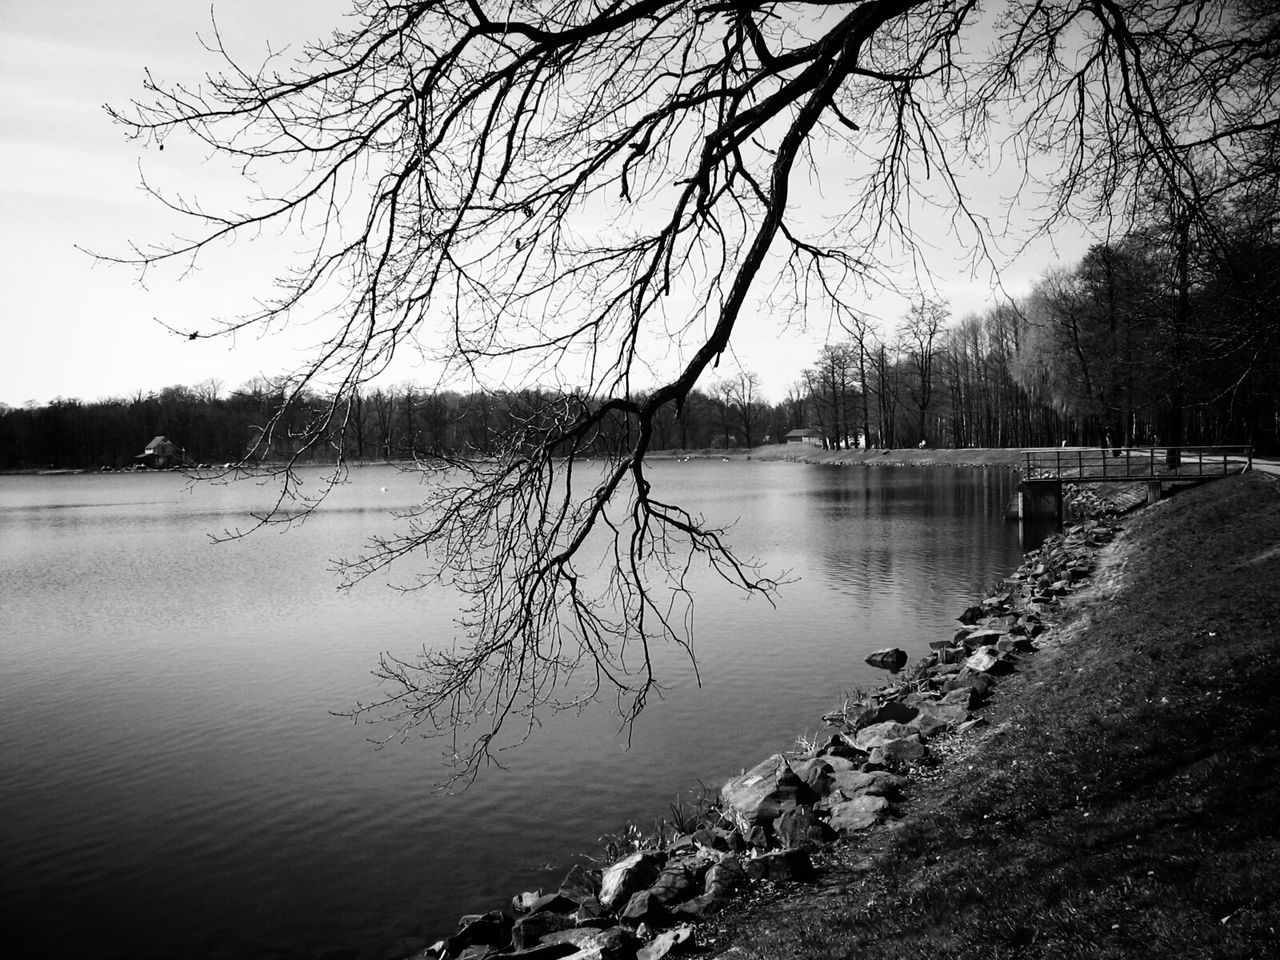 water, tree, lake, nature, bare tree, beauty in nature, tranquility, tranquil scene, scenics, non-urban scene, no people, reflection, sky, outdoors, waterfront, branch, landscape, winter, day